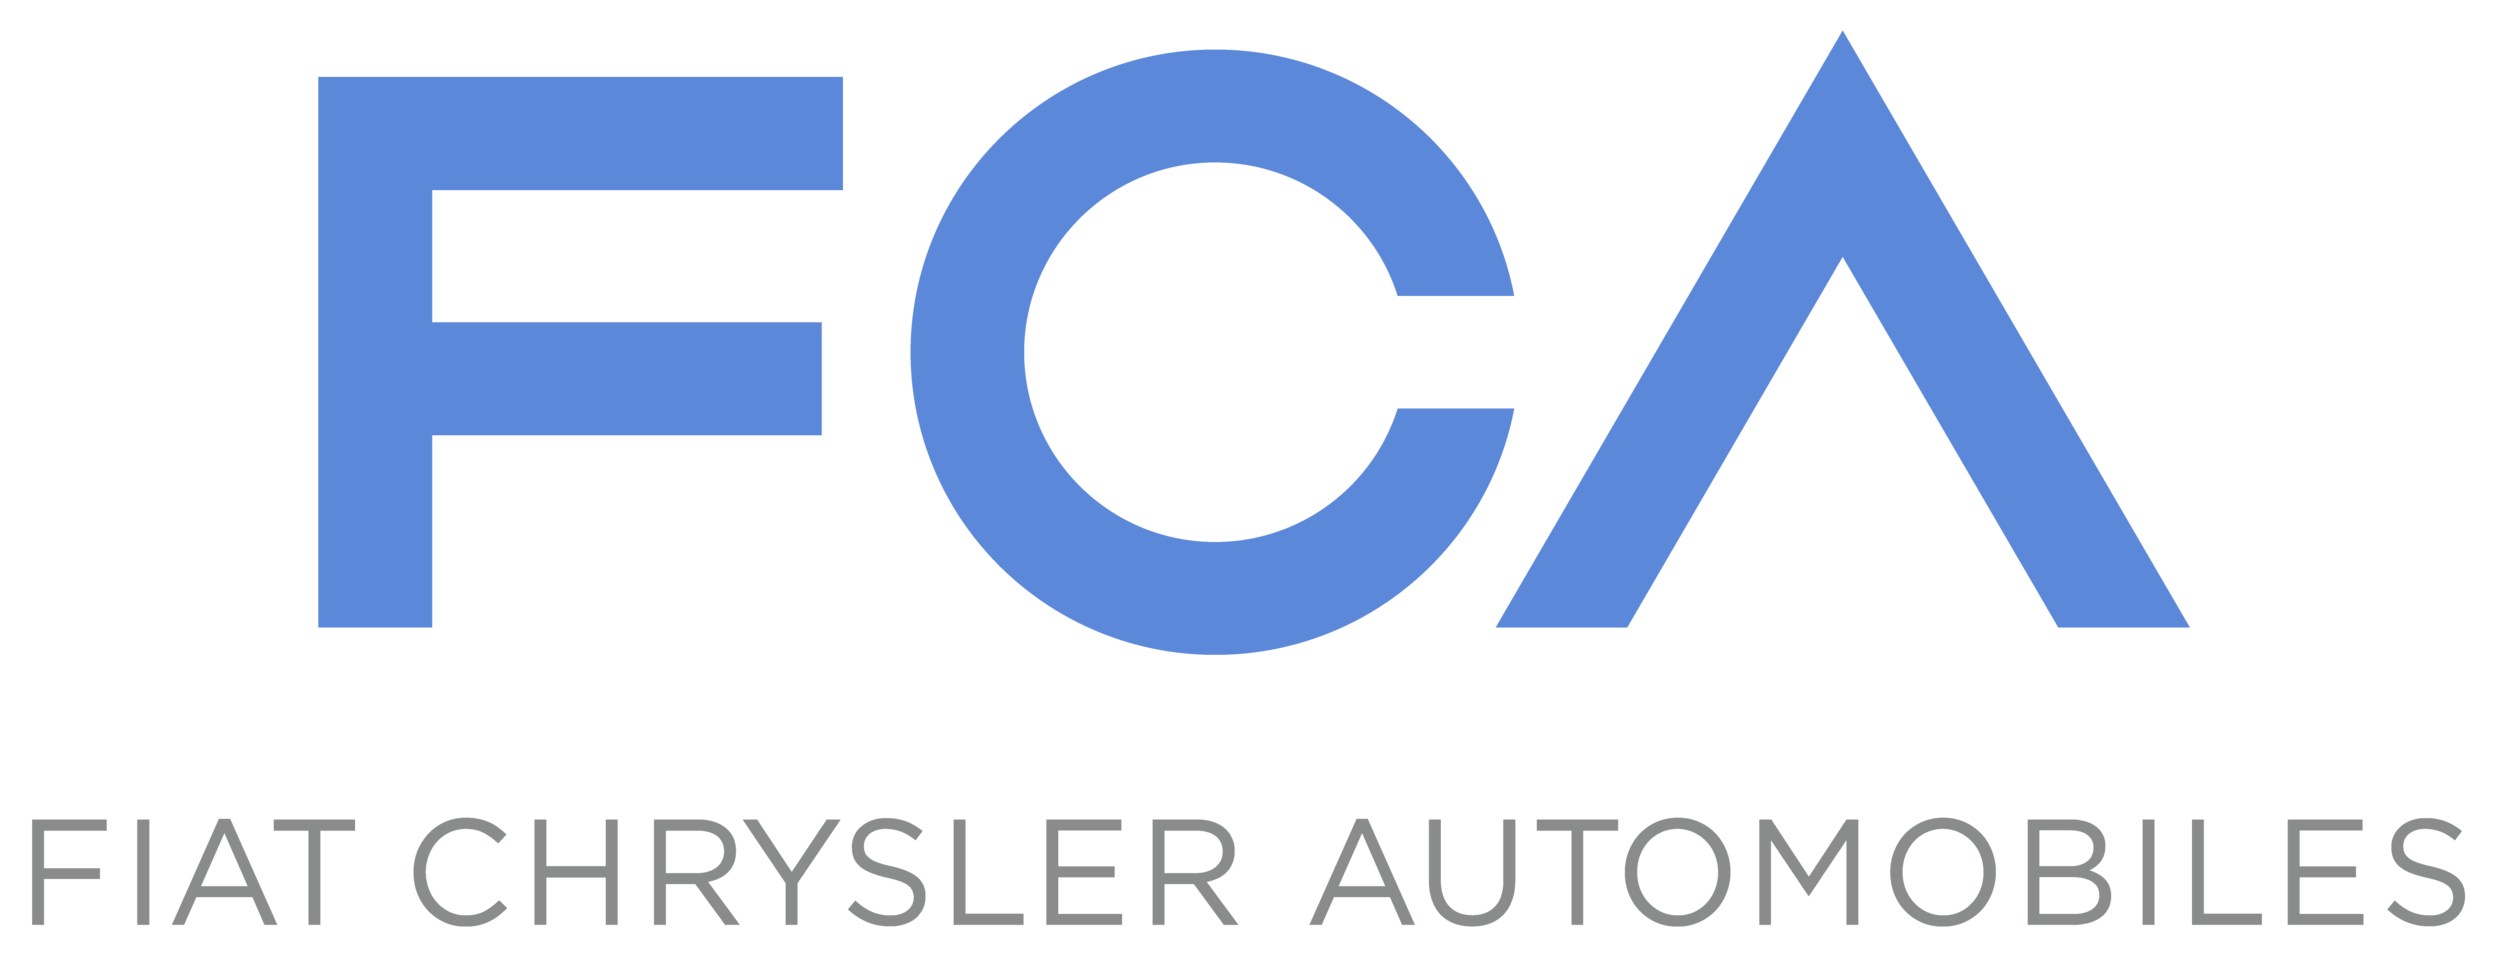 Fiat Chrysler Automobiles , also known as  FCA ( BIT : FCA , NYSE : FCAU ), is an  Italian - American  multinational  automobile manufacturer.It is the world's  seventh-largest auto maker .The group was established in 2014 by merging  Fiat S.p.A. into a new holding company incorporated in the  Netherlands and headquartered in  London , UK and primary listing on the  New York Stock Exchange and secondary on  Borsa Italiana . Exor S.p.A , an Italian investment group owned by the Agnelli family, holds a 44.31% voting interest in FCA, and 29.19% ownership position.  It operates through two main subsidiaries: FCA Italy (previously  Fiat Group Automobiles ) and FCA US (previously Chrysler LLC) with many well known automotive marques including  Alfa Romeo , Chrysler , Dodge , Fiat , Fiat Professional , Jeep , Lancia , Ram Trucks , Abarth , Mopar and  SRT . FCA also owns  Maserati , Comau , Magneti Marelli , and  Teksid .Today FCA operates in four regions ( NAFTA , LATAM , APAC , EMEA ).